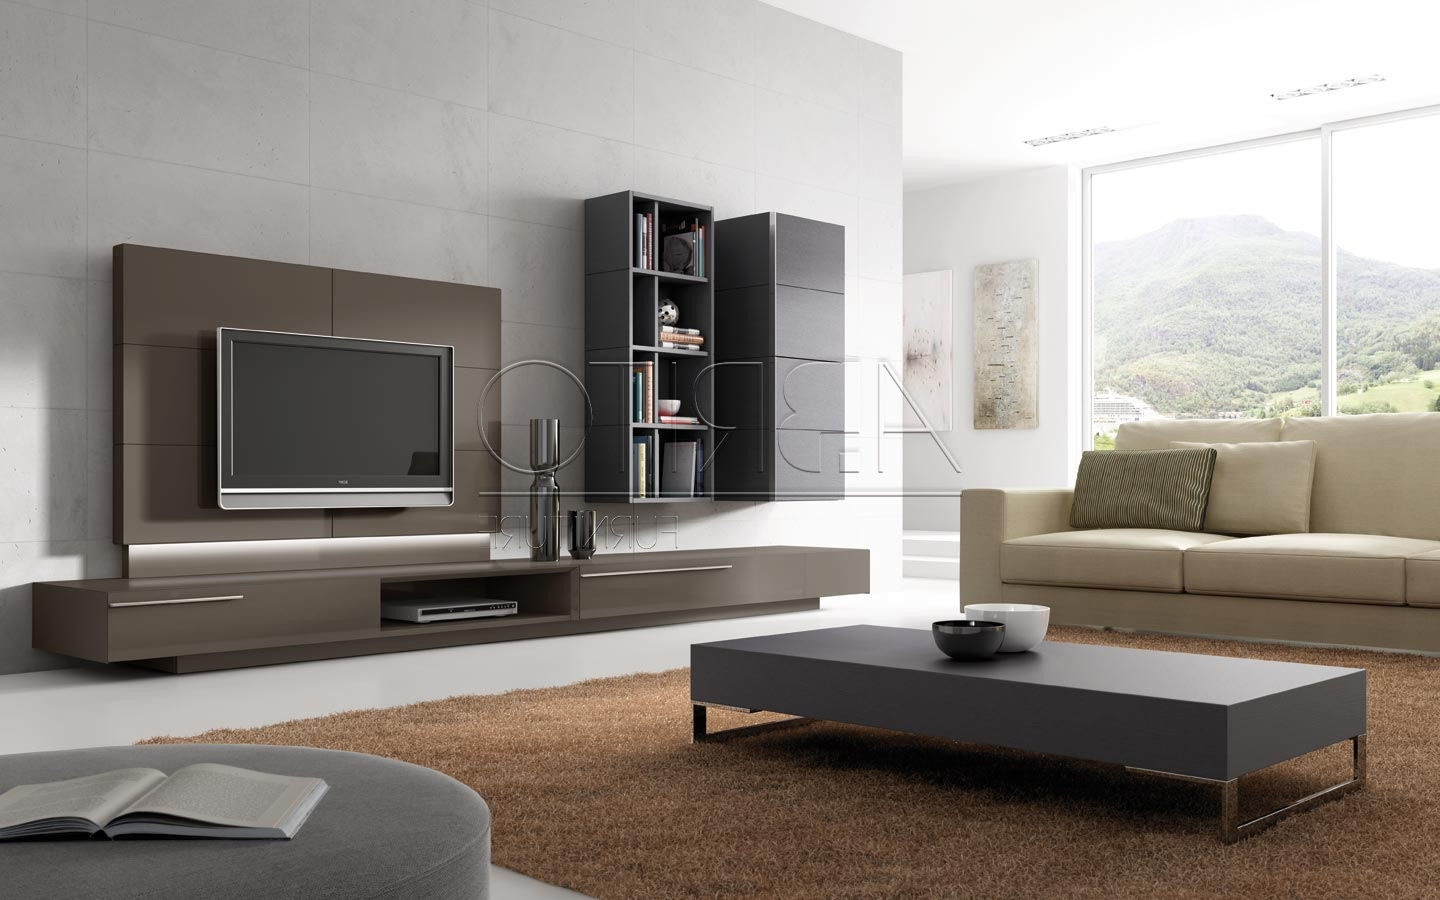 View Gallery of Modern Tv Wall Units (Showing 4 of 15 Photos)